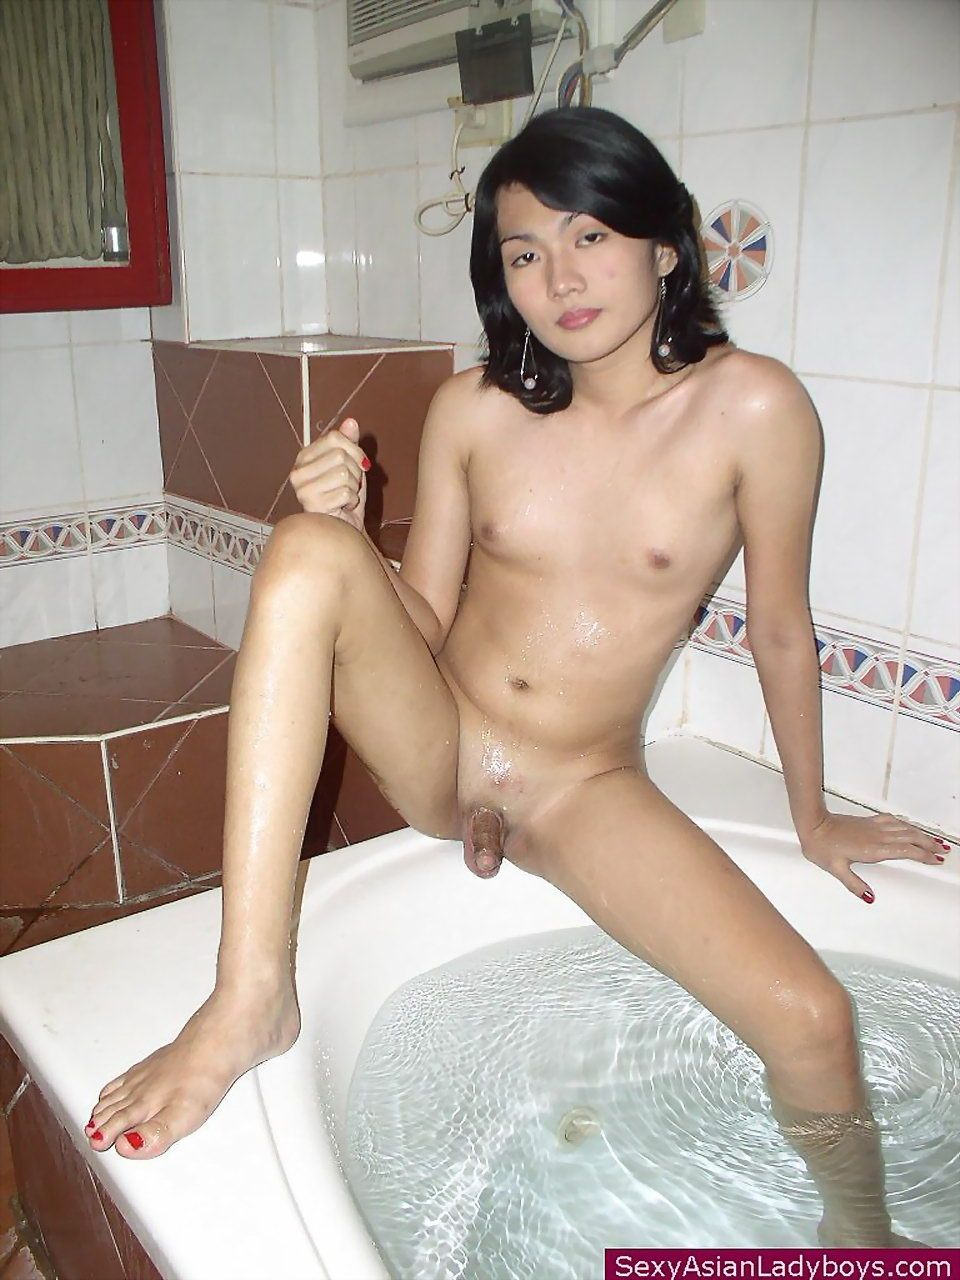 Nude galleries softcore image adult